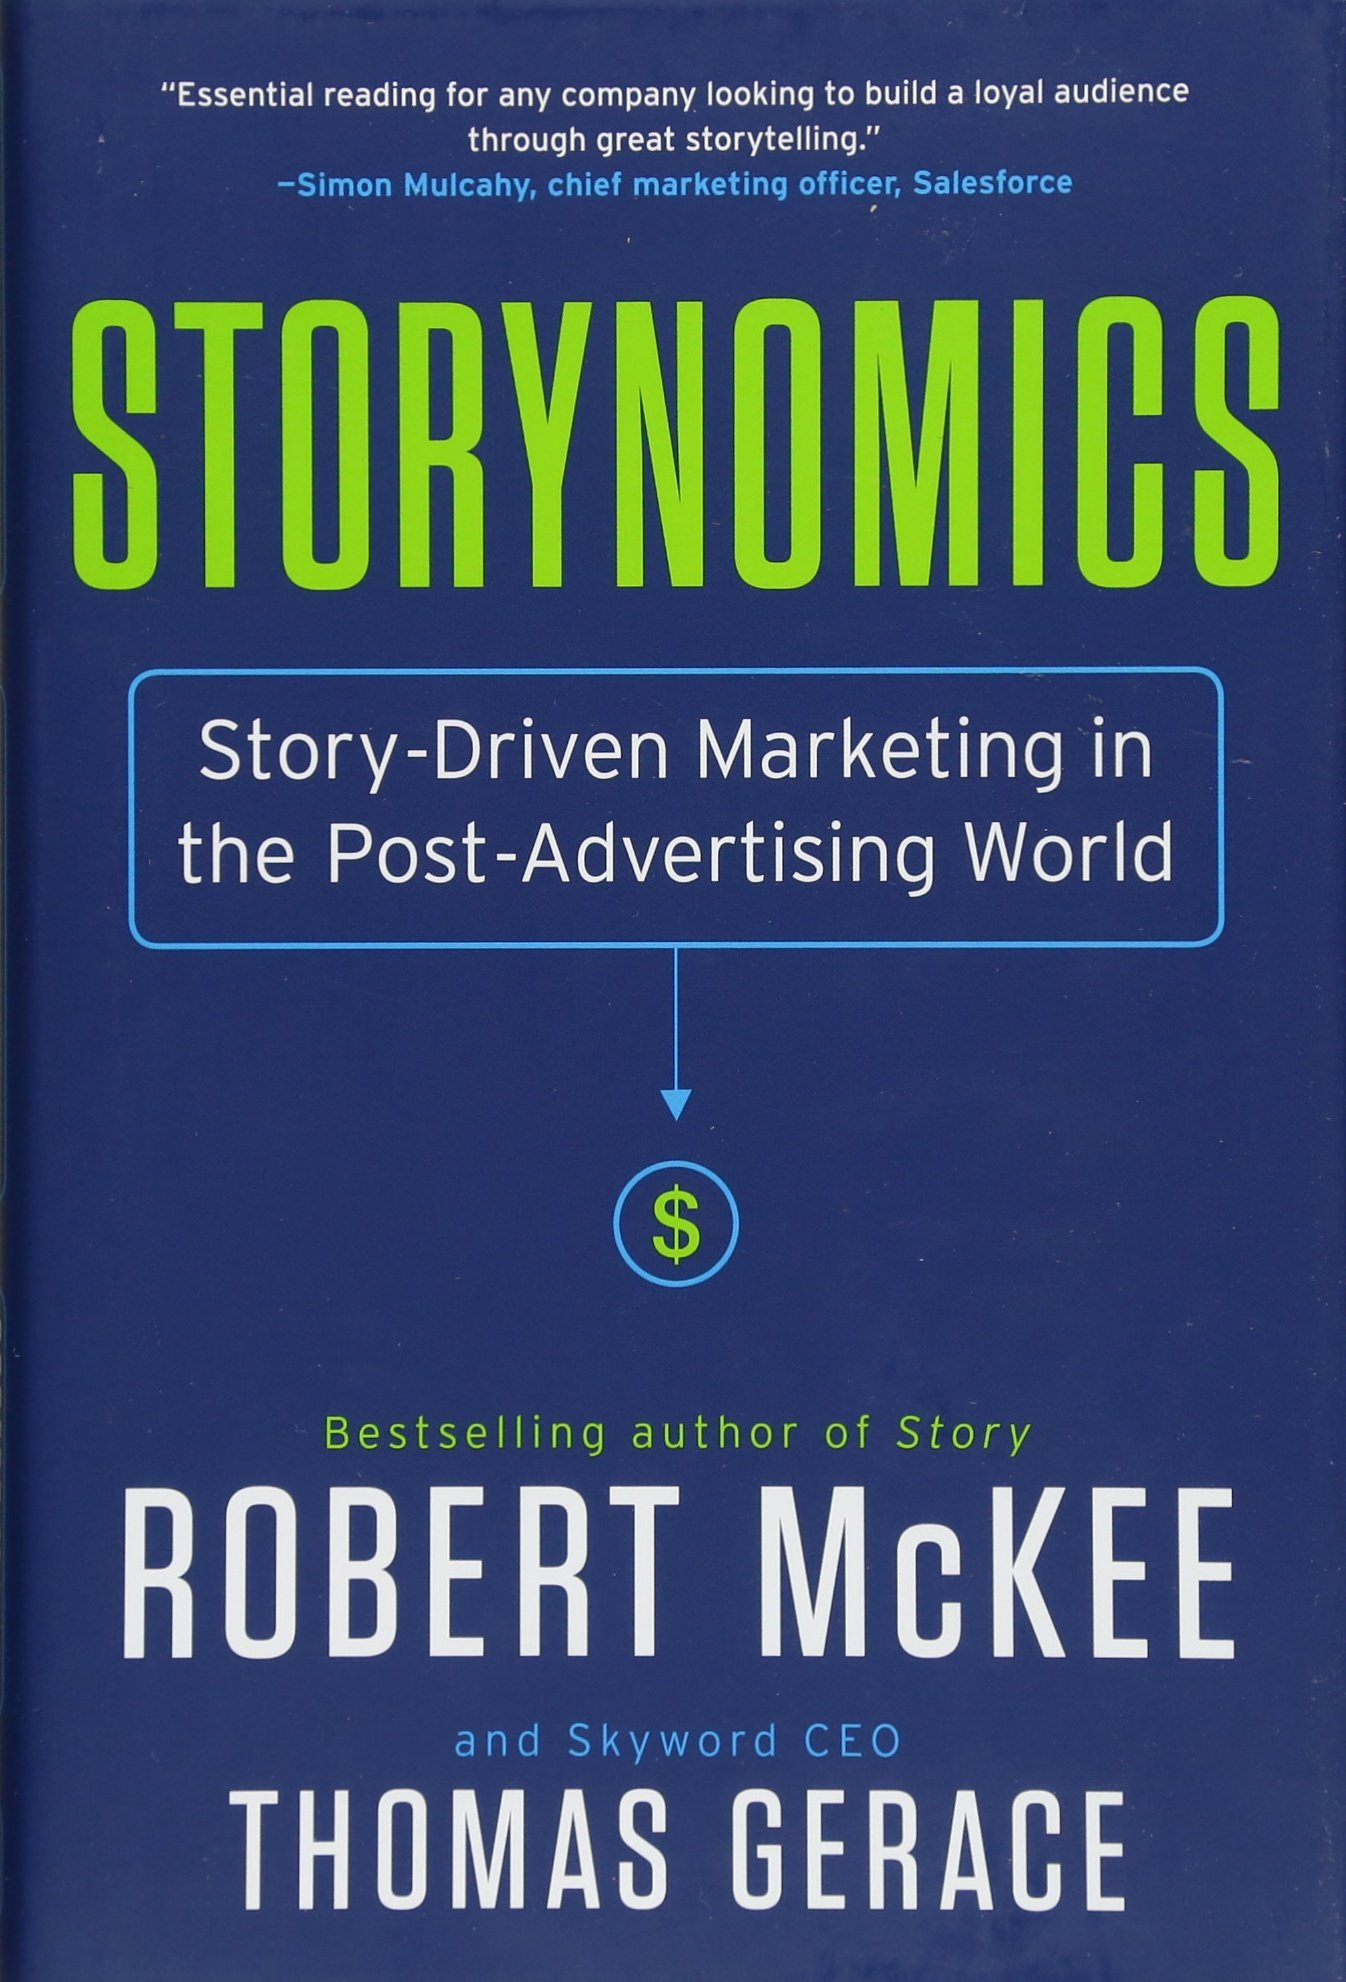 英文原版 罗伯特·麦基 (Robert McKee) 故事经济学 Storynomics: Story-Driven Marketing in the Post-Advertising World